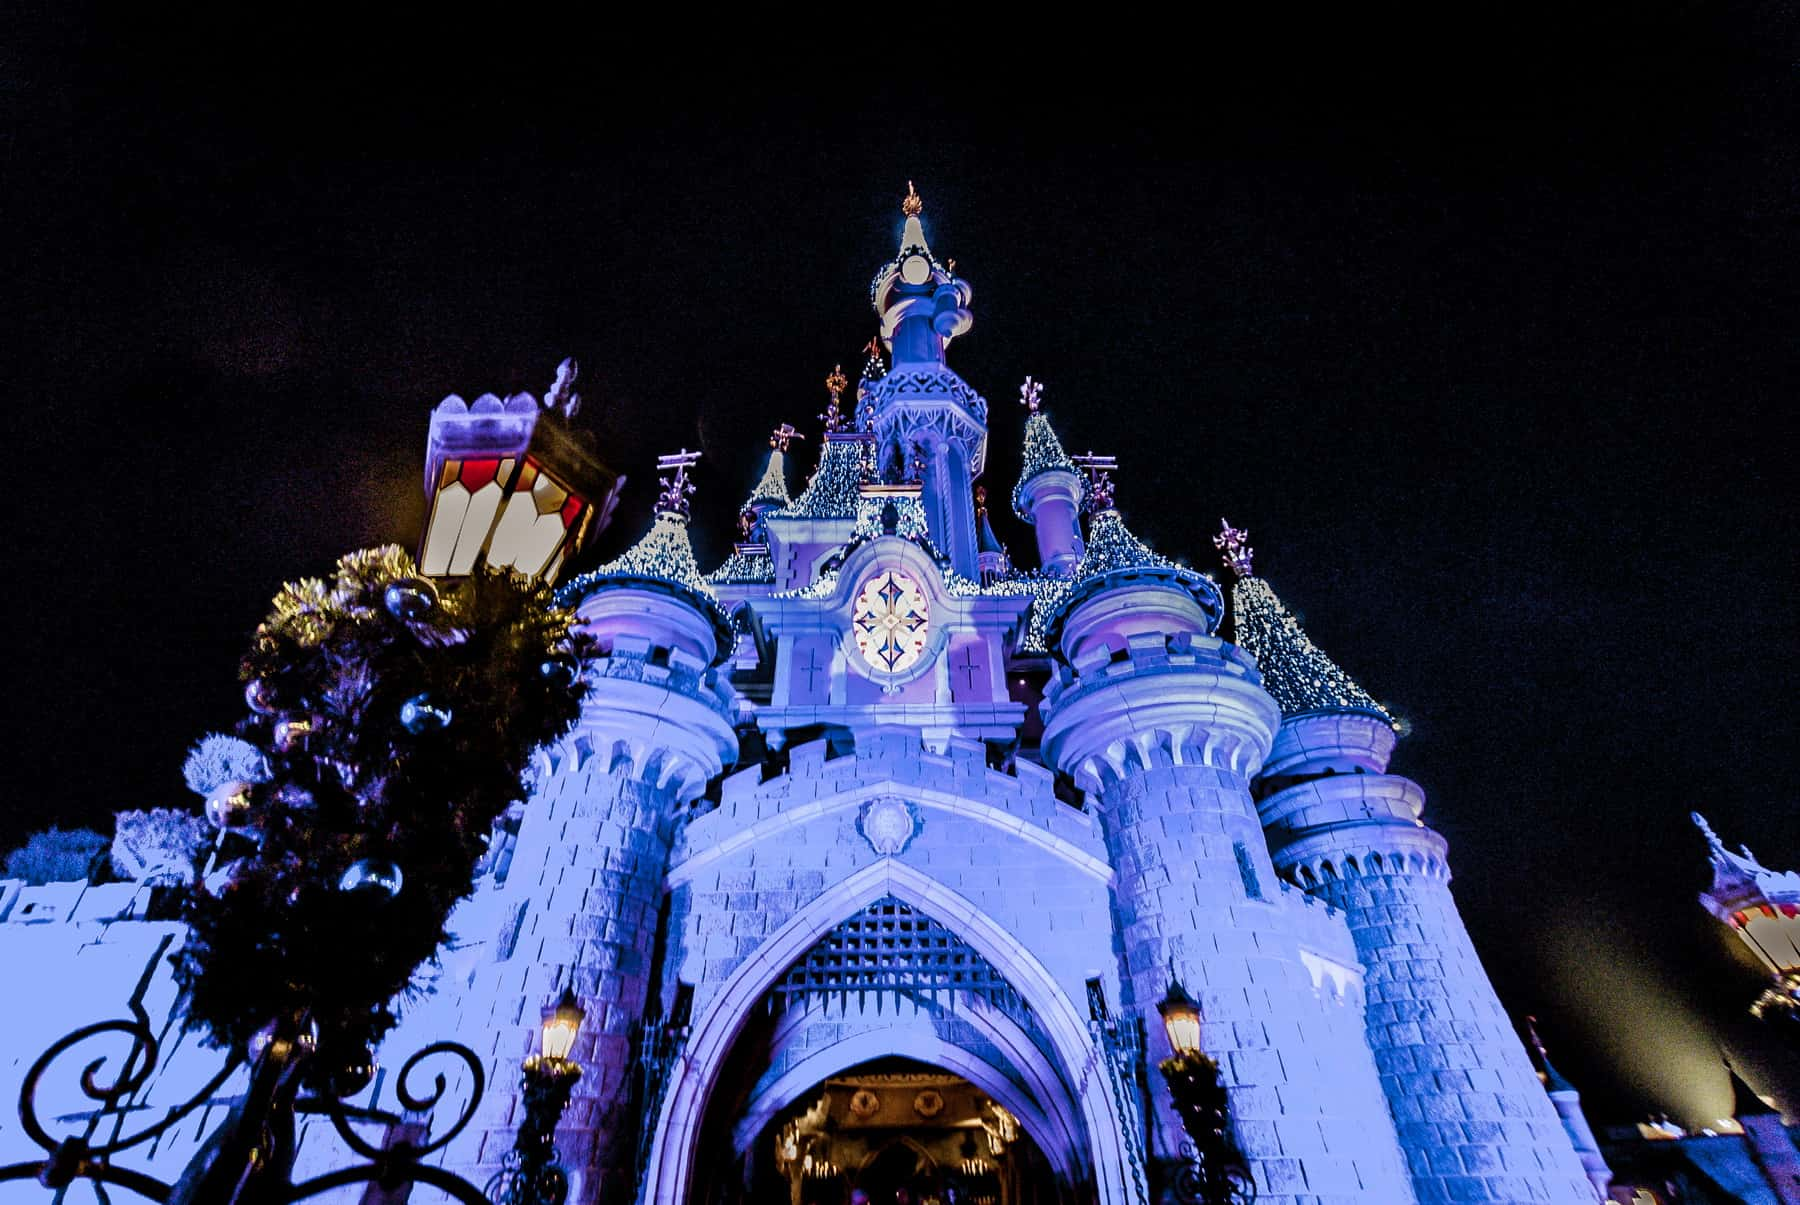 Tips for visiting Disneyland Paris - The Ultimate how to guide